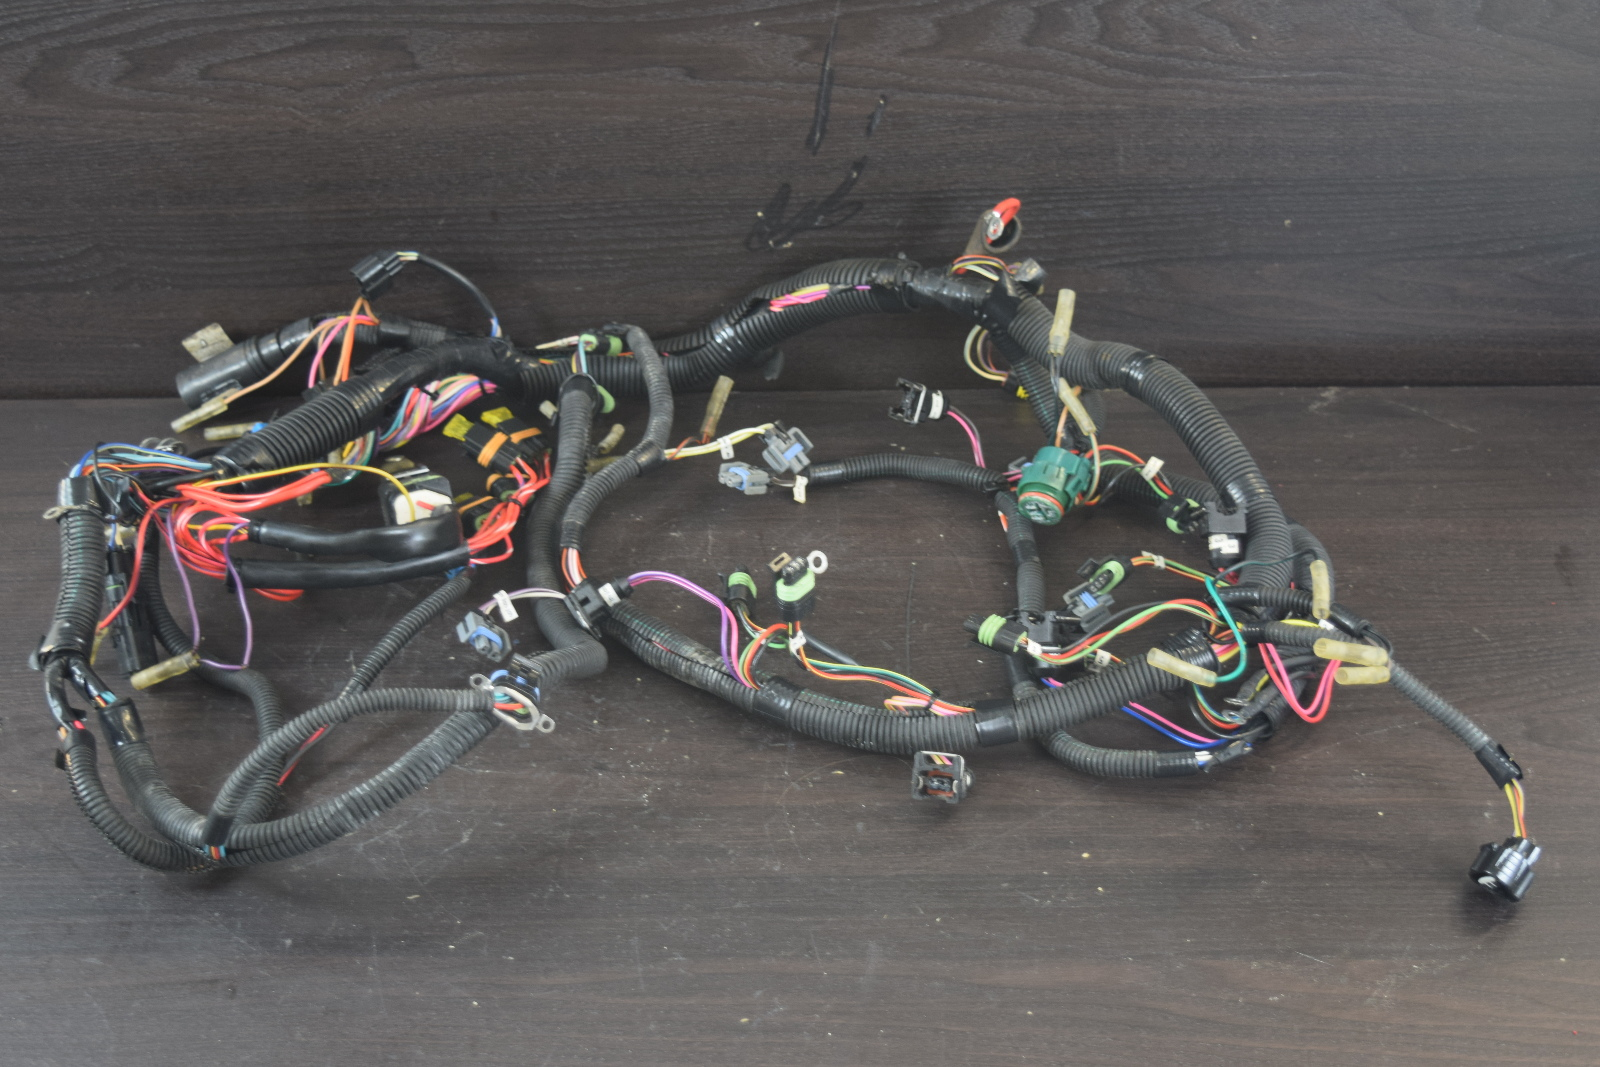 1998 Mercury Mariner Wiring Harness Assembly 850385A2 200 225HP DFI V6 3.0L  ...